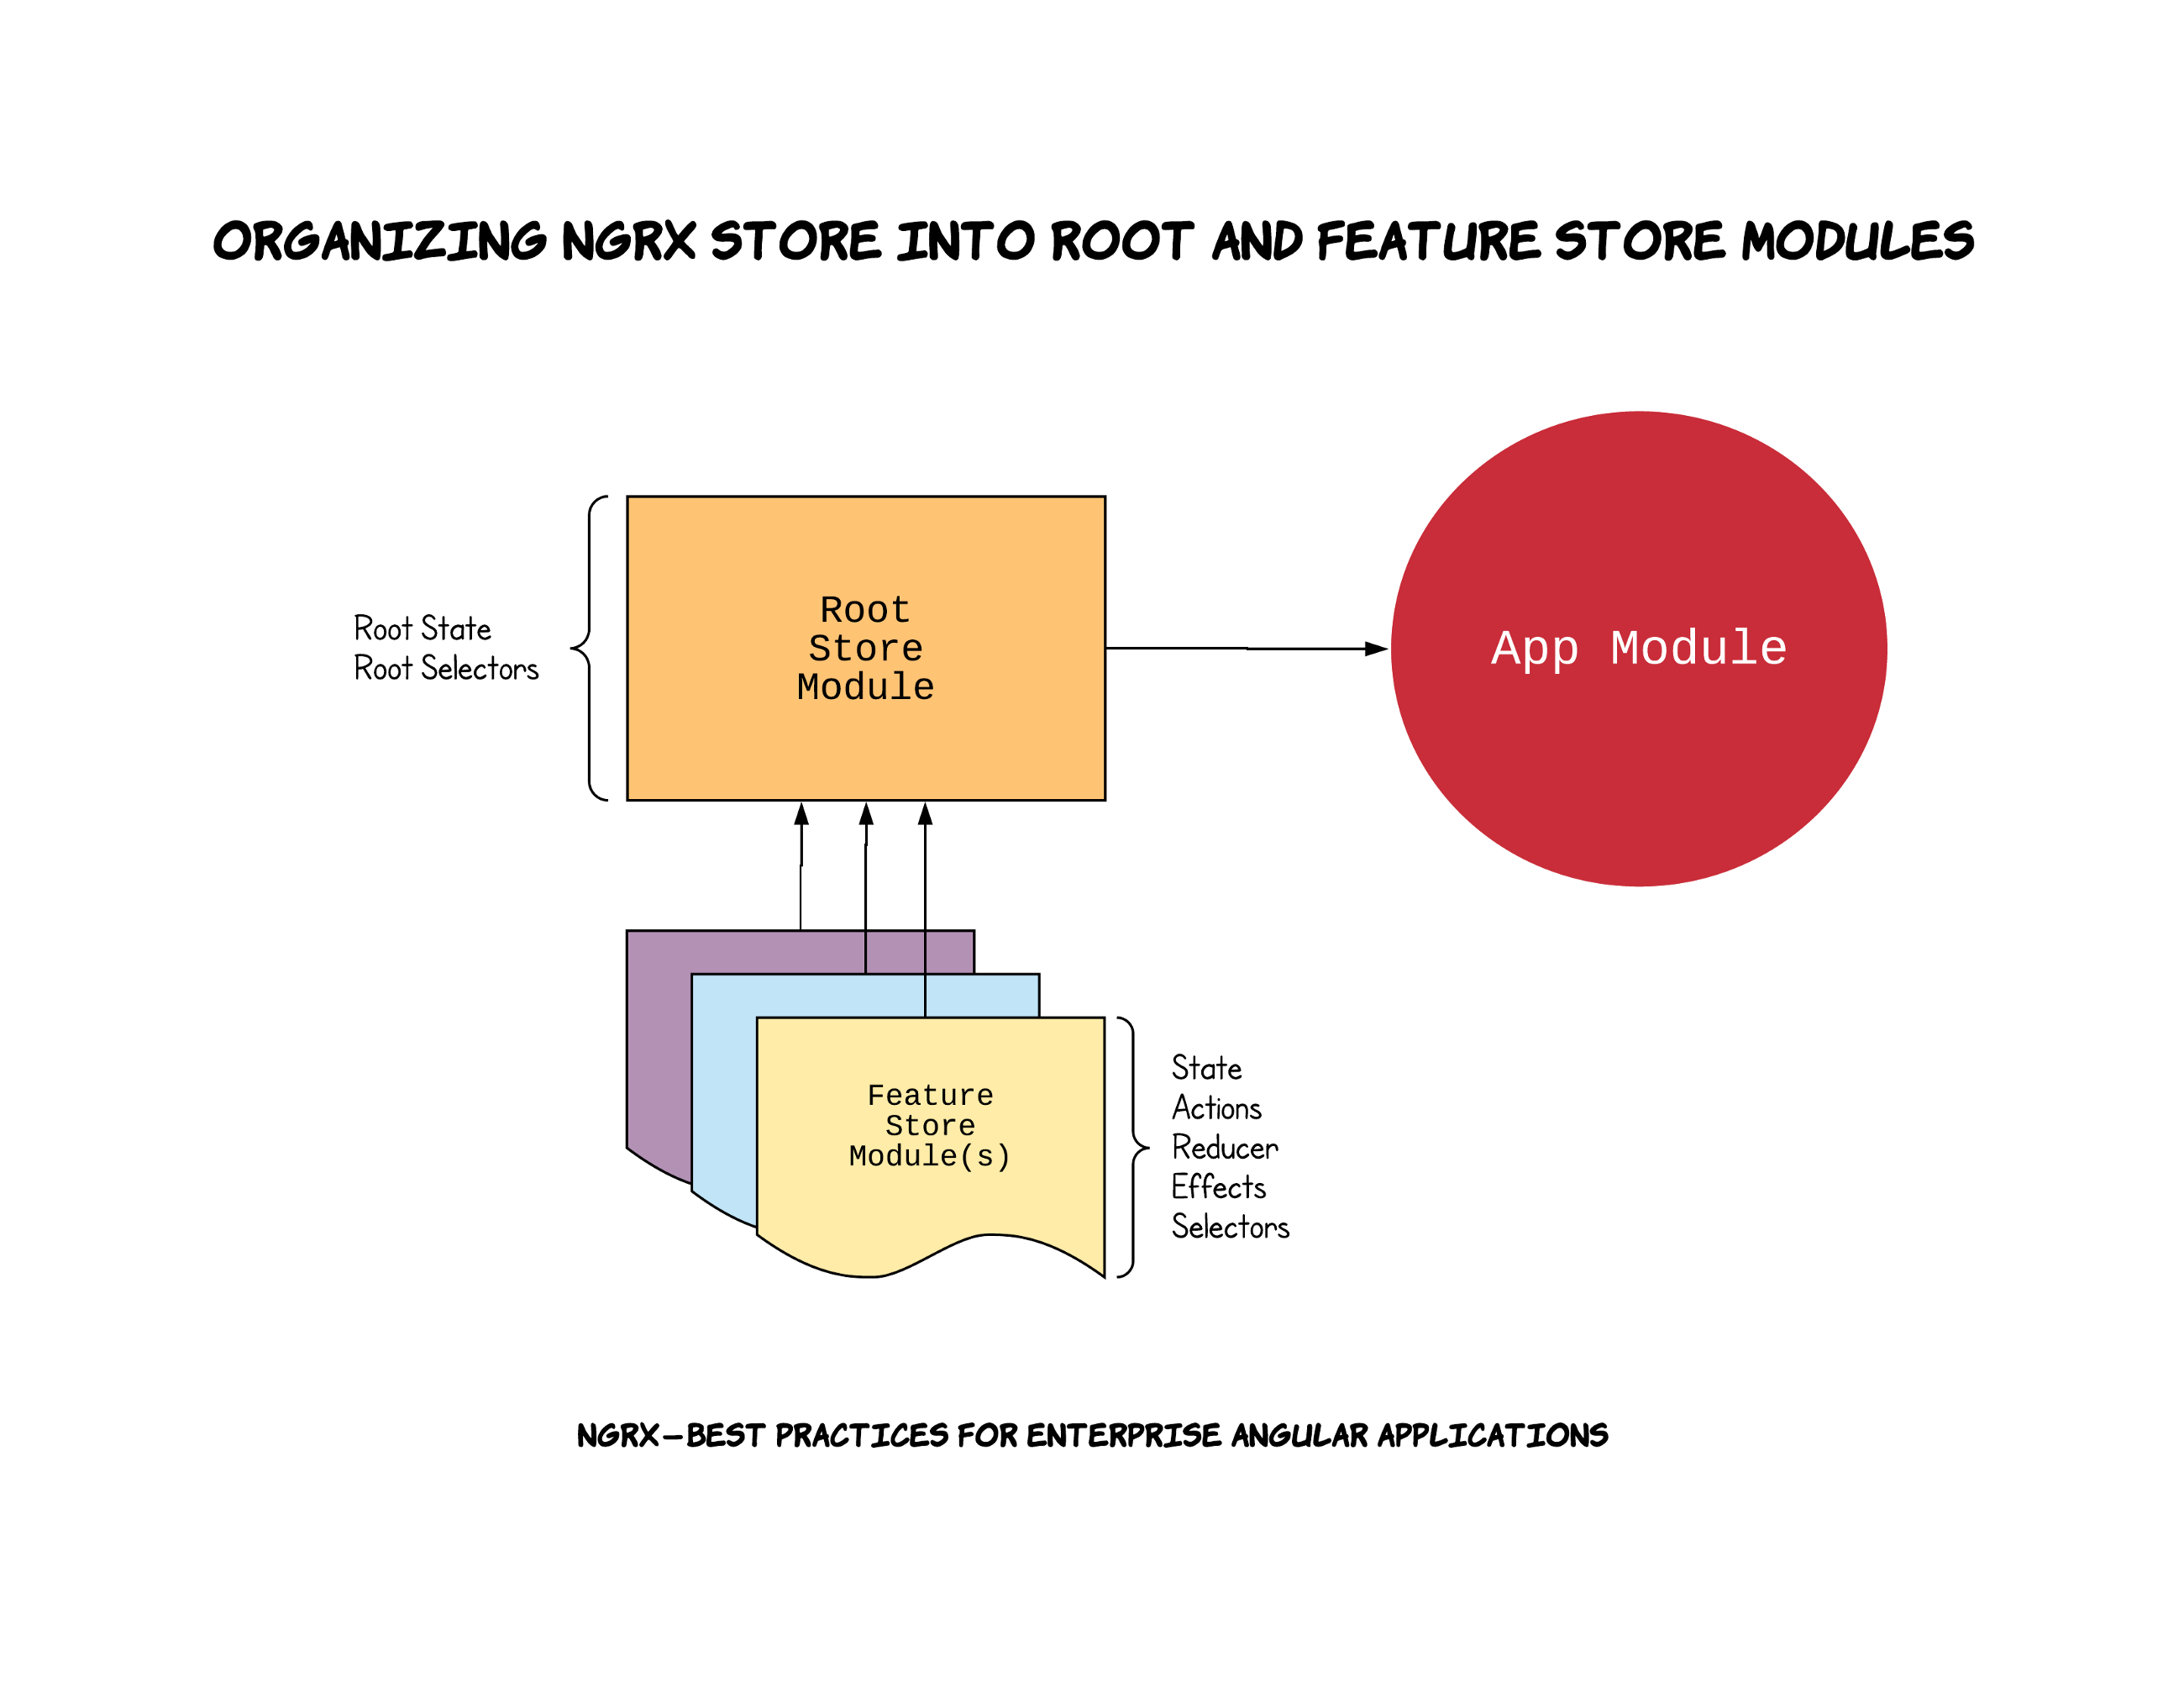 Ngrx Best Practices For Enterprise Angular Applications Design Environment At Both Platform Layout And Wiring Schematic